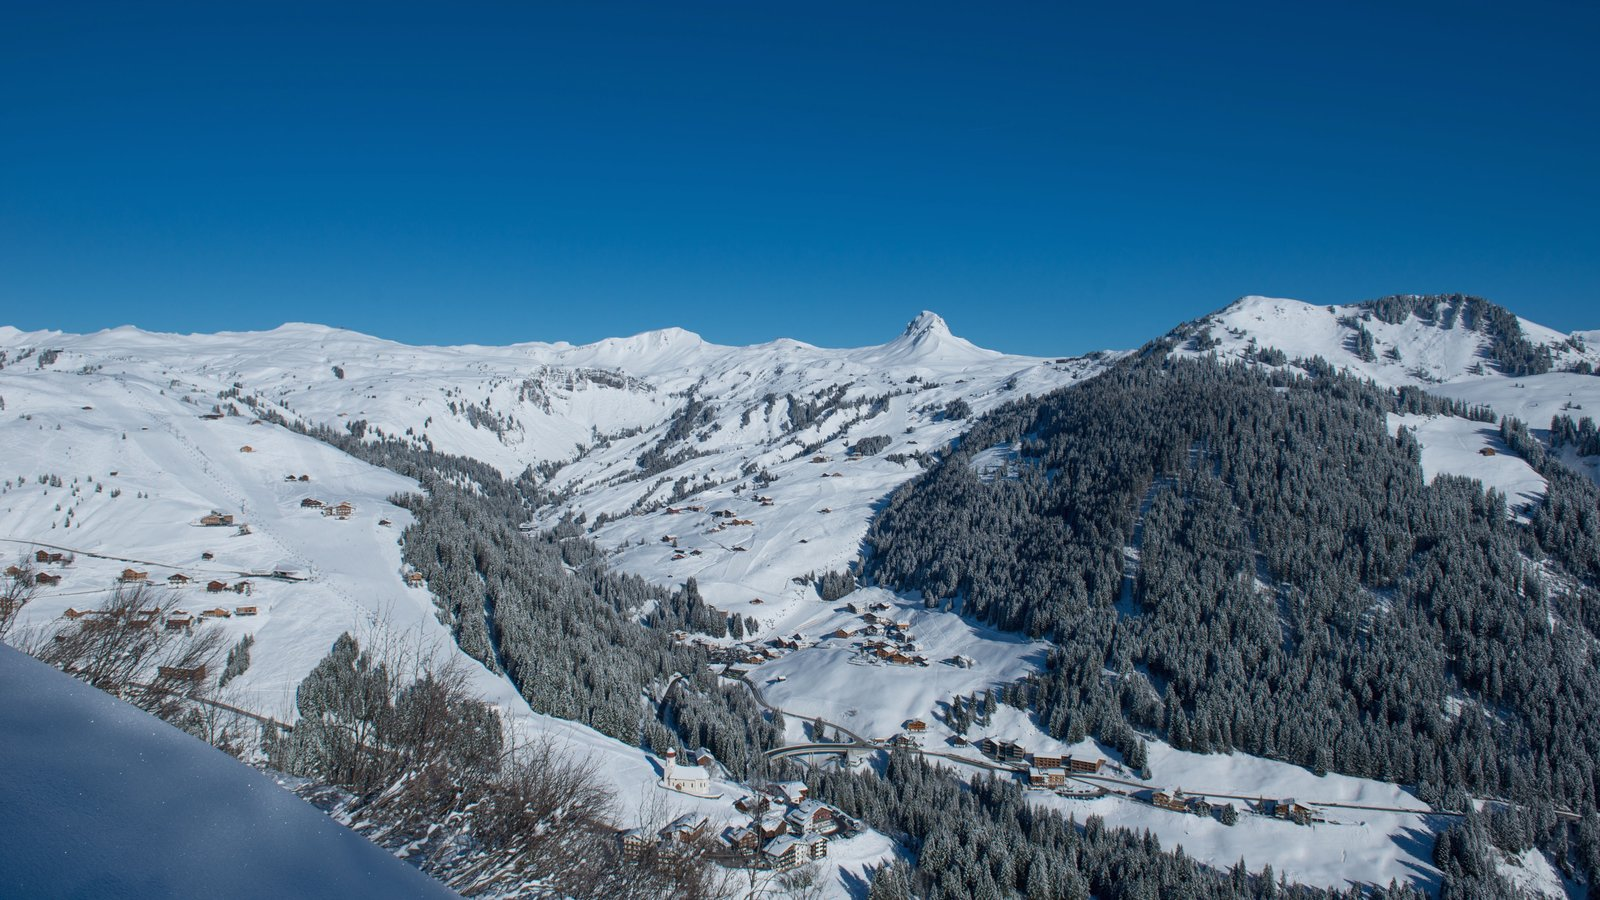 mountain pictures: view images of damuls ski area